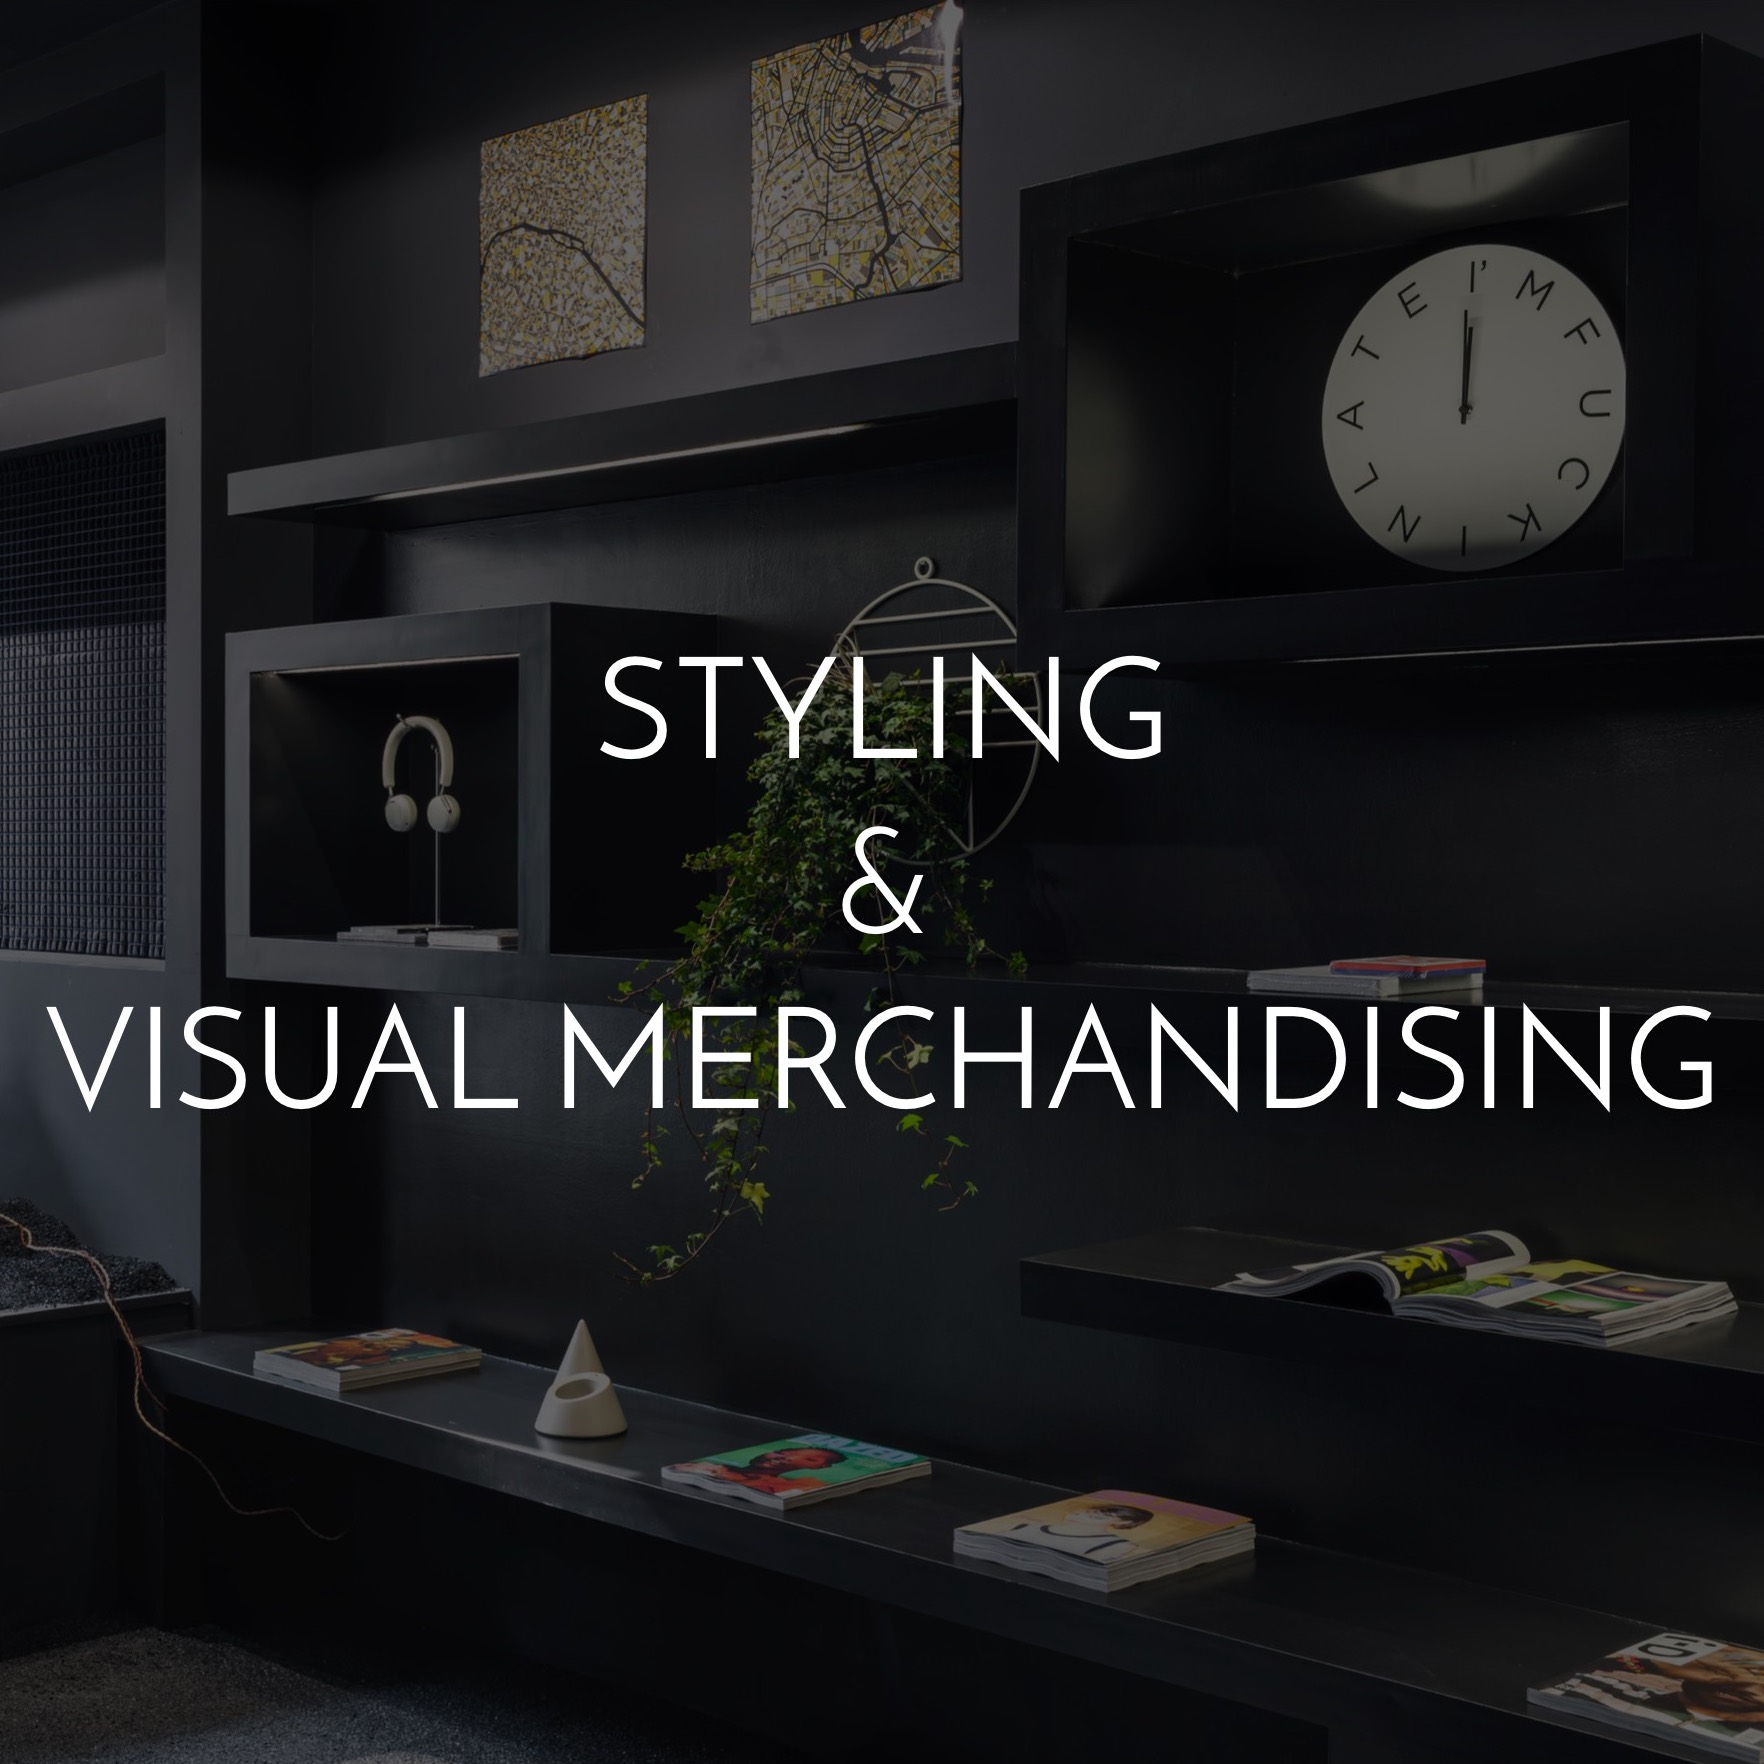 Styling and visual merchandising service by Haigō studio in Milan